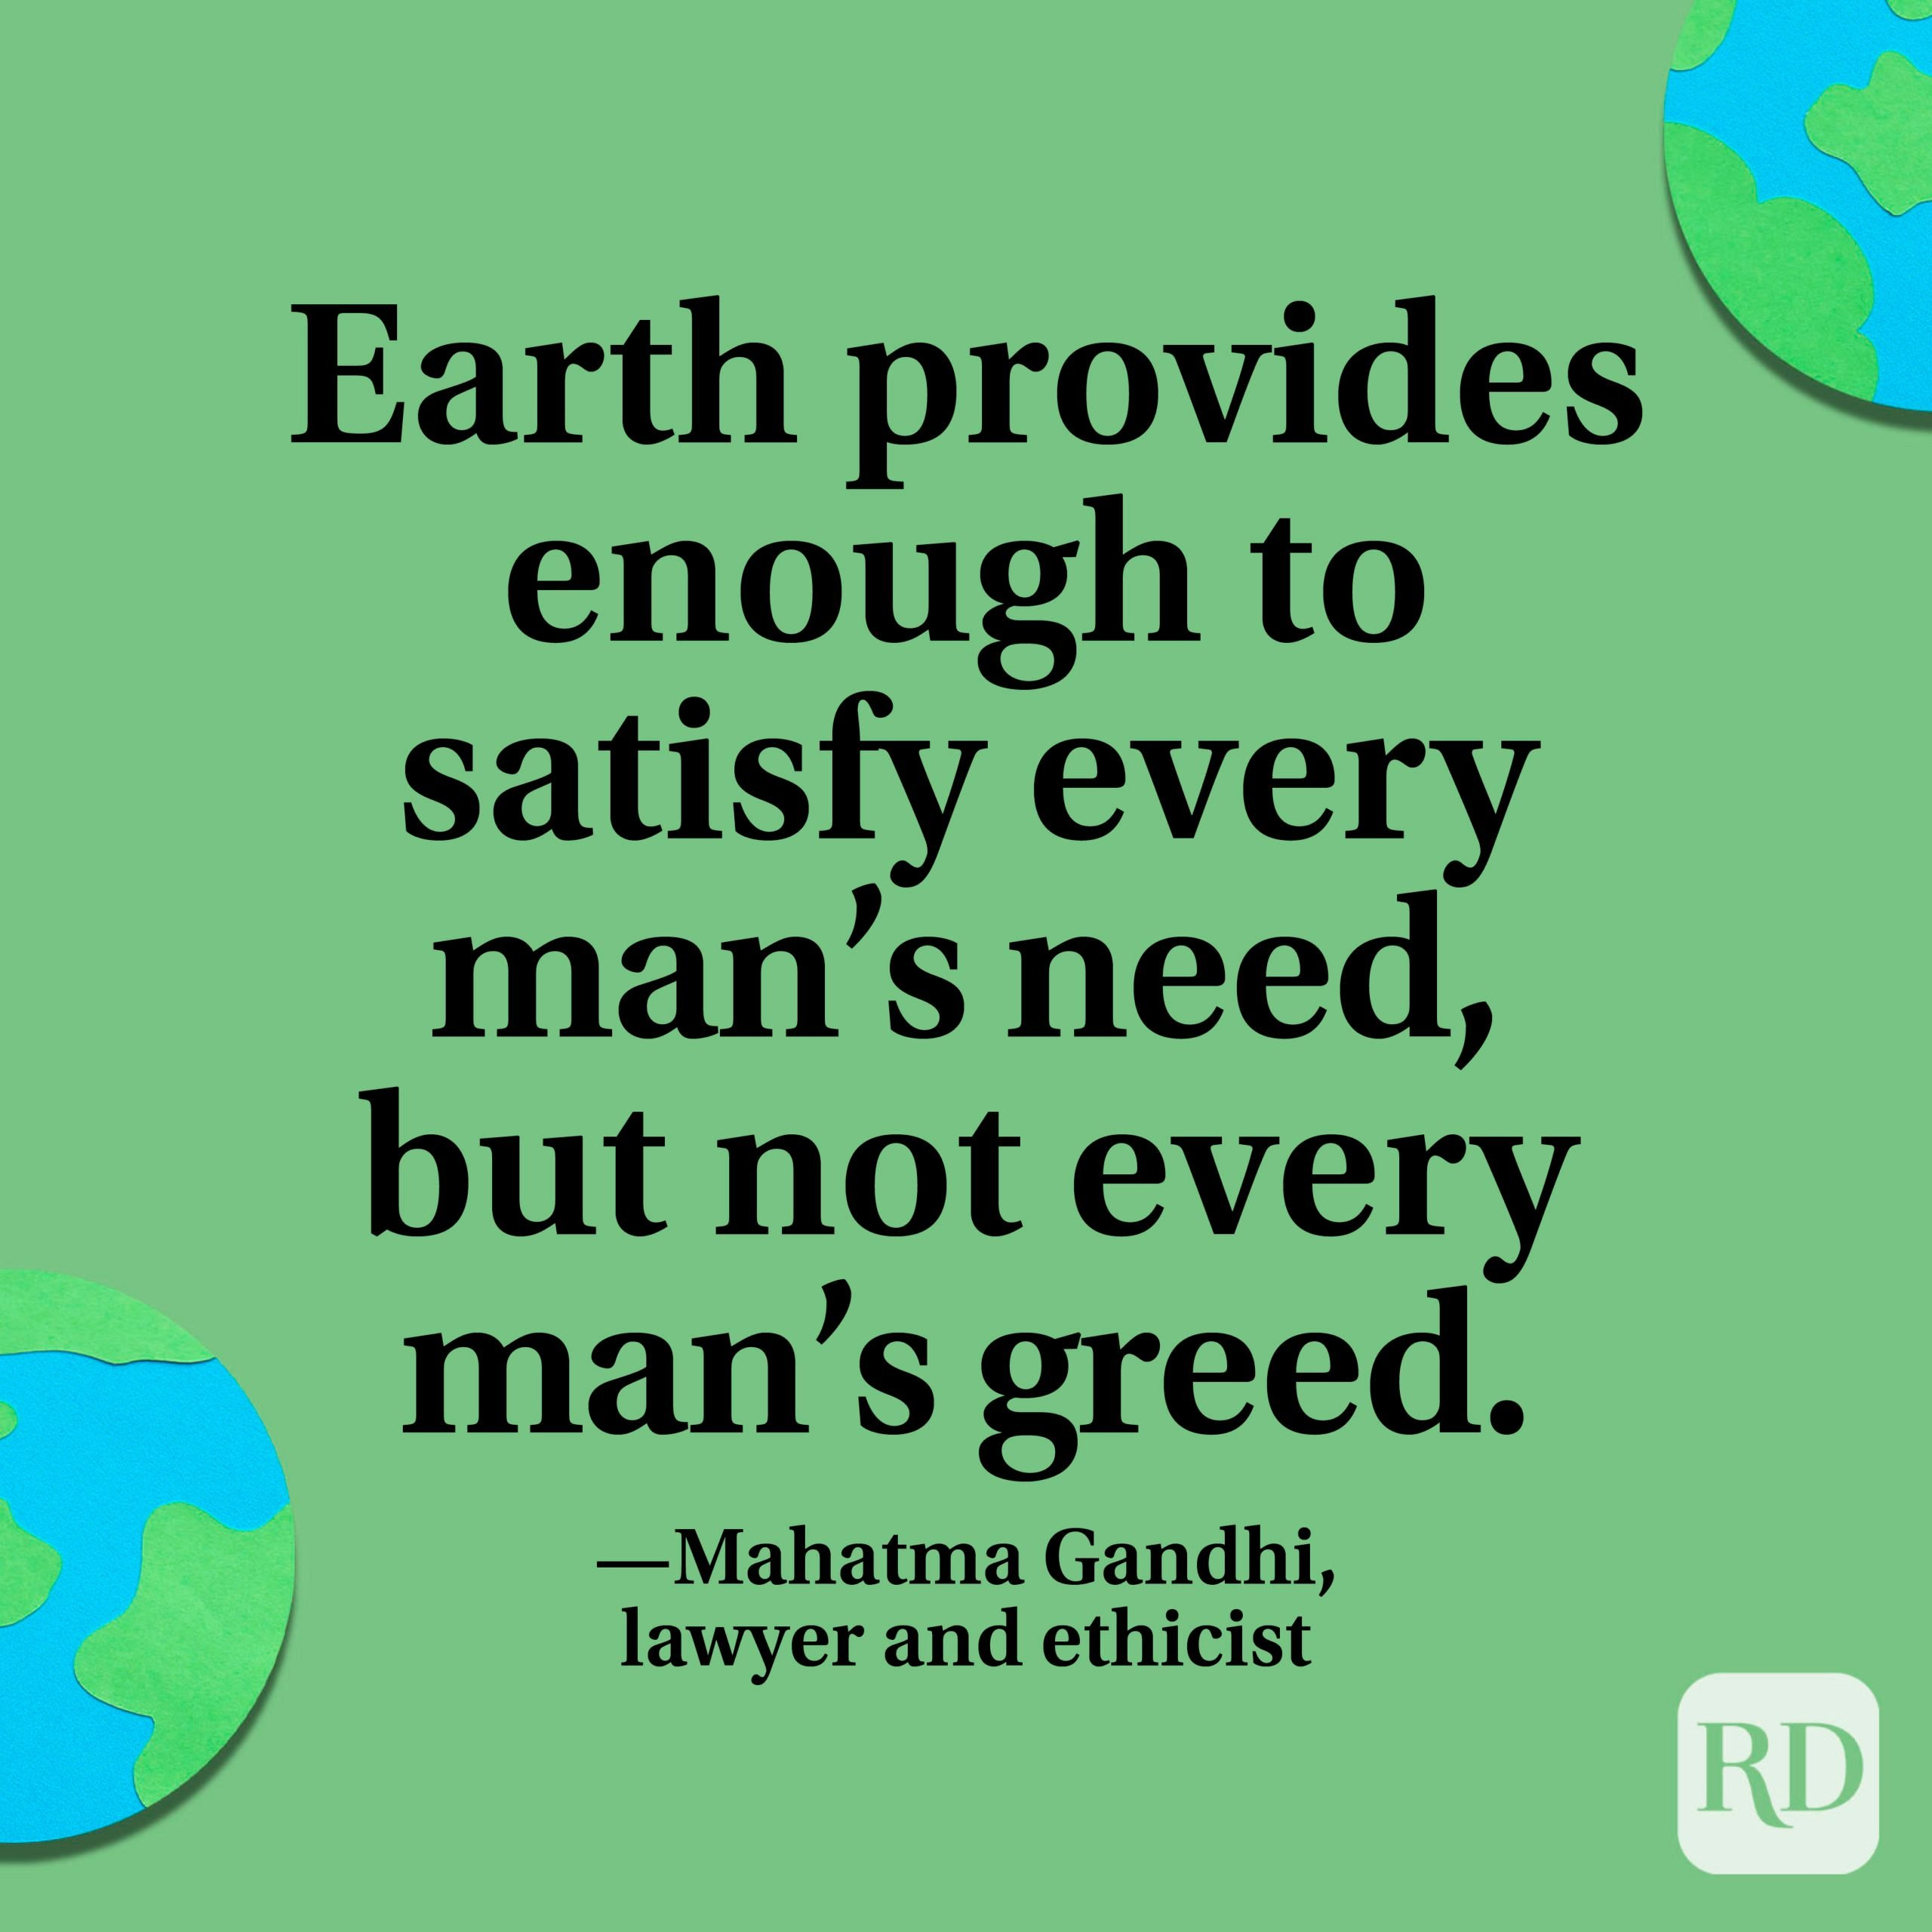 """""""Earth provides enough to satisfy every man's need, but not every man's greed."""" —Mahatma Gandhi, lawyer and ethicist."""